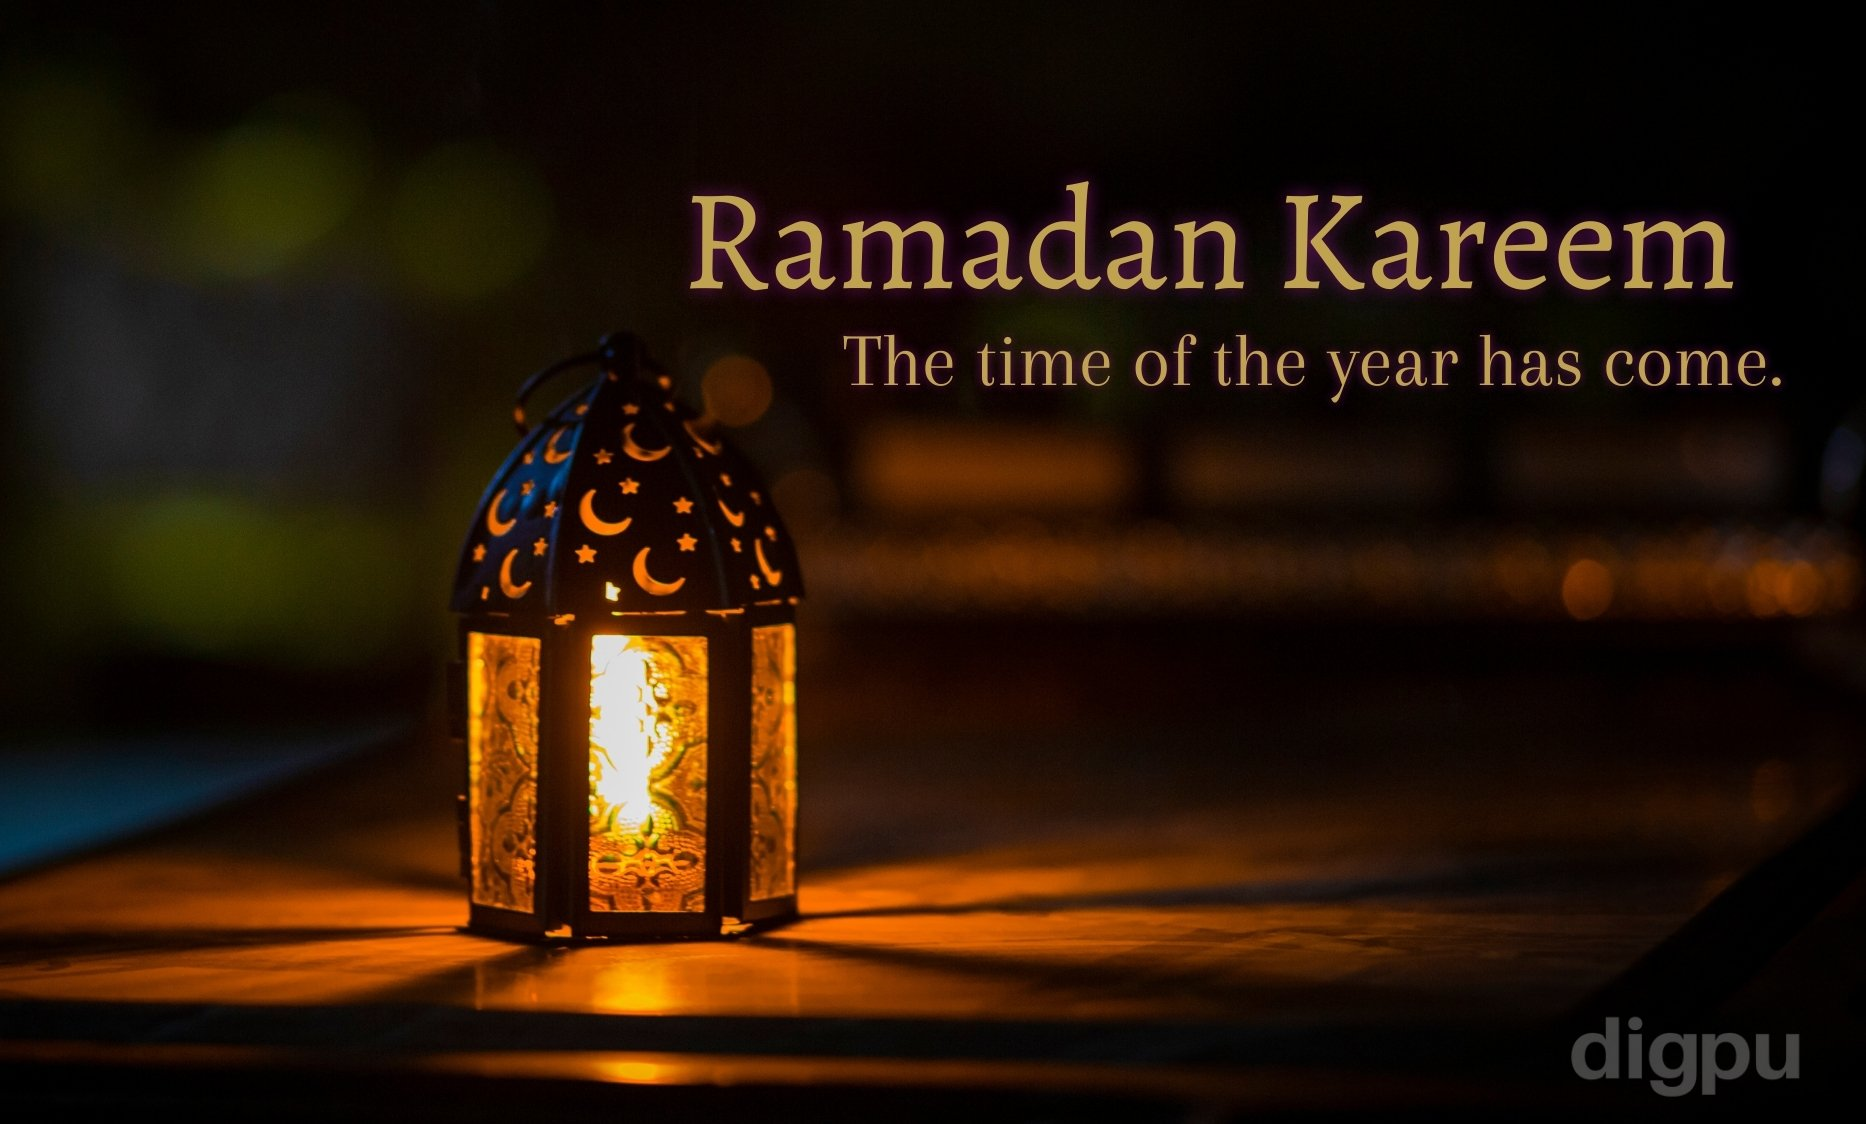 Month-long fasting to begin tomorrow as Ramadan crescent moon sighted in Kashmir - Digpu - Dilpaziir